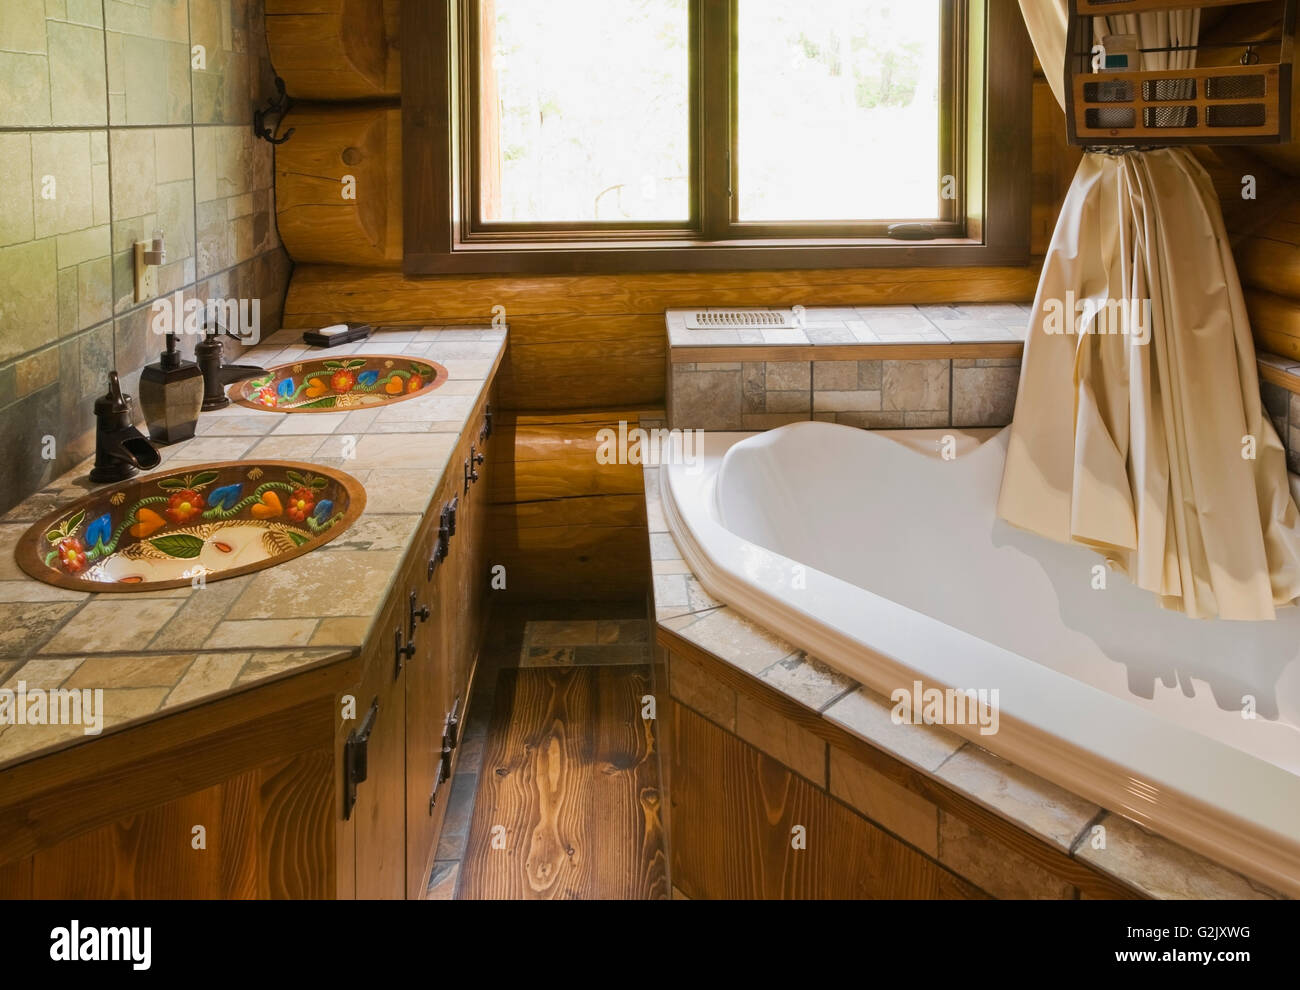 Painted sinks in the bathroom - Ceramic Tile Countertop Inlaid Hand Painted Copper Sinks Bathtub In Main Bathroom Inside A Handcrafted